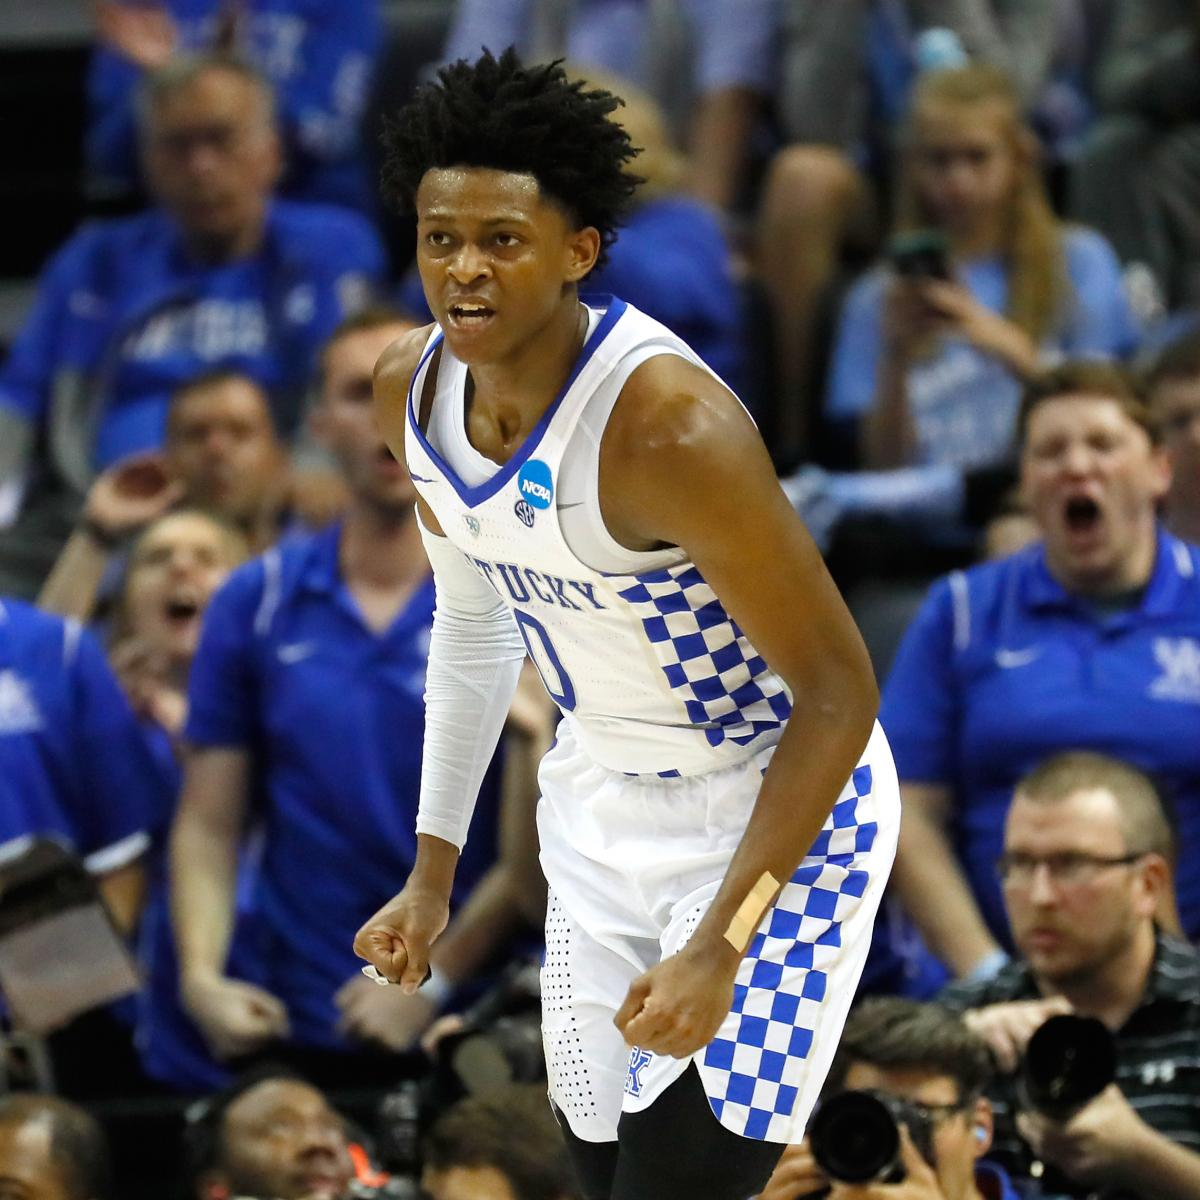 T Of C Alums 2017 Nba Draft: De'Aaron Fox Says He's The Best PG In 2017 NBA Draft